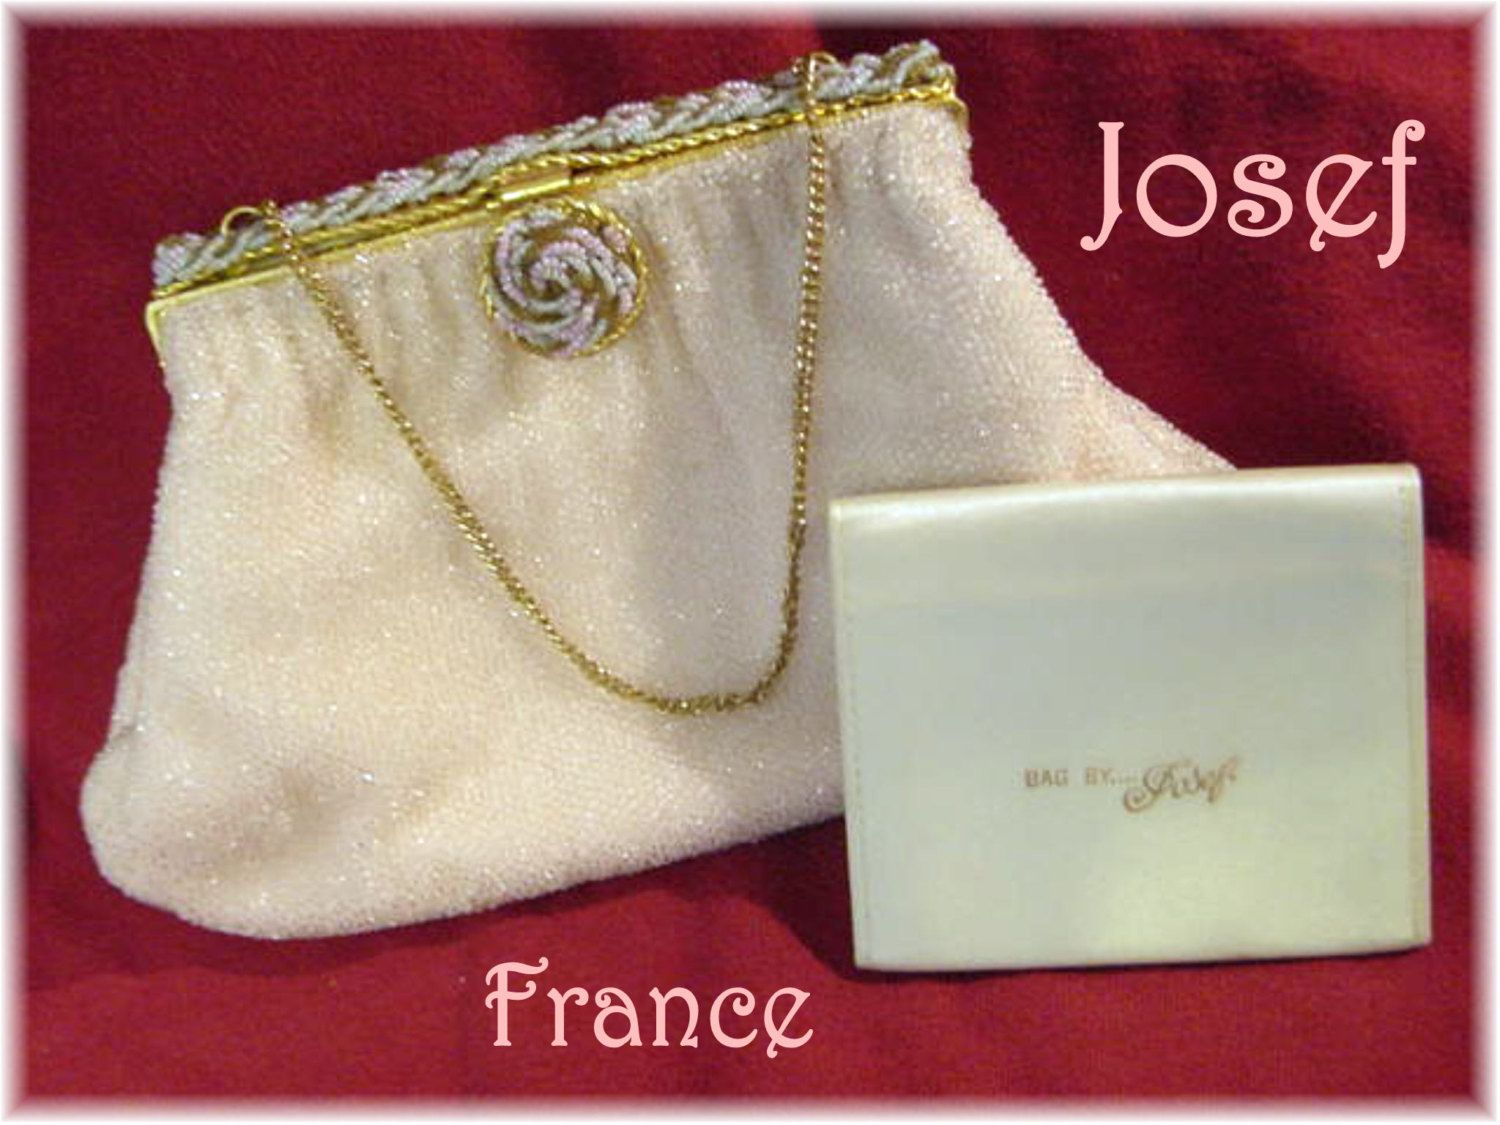 Josef - Hand Beaded Evening Purse with Mirror - France Braided Crystal Beads - Pink White Brown - FREE Shipping